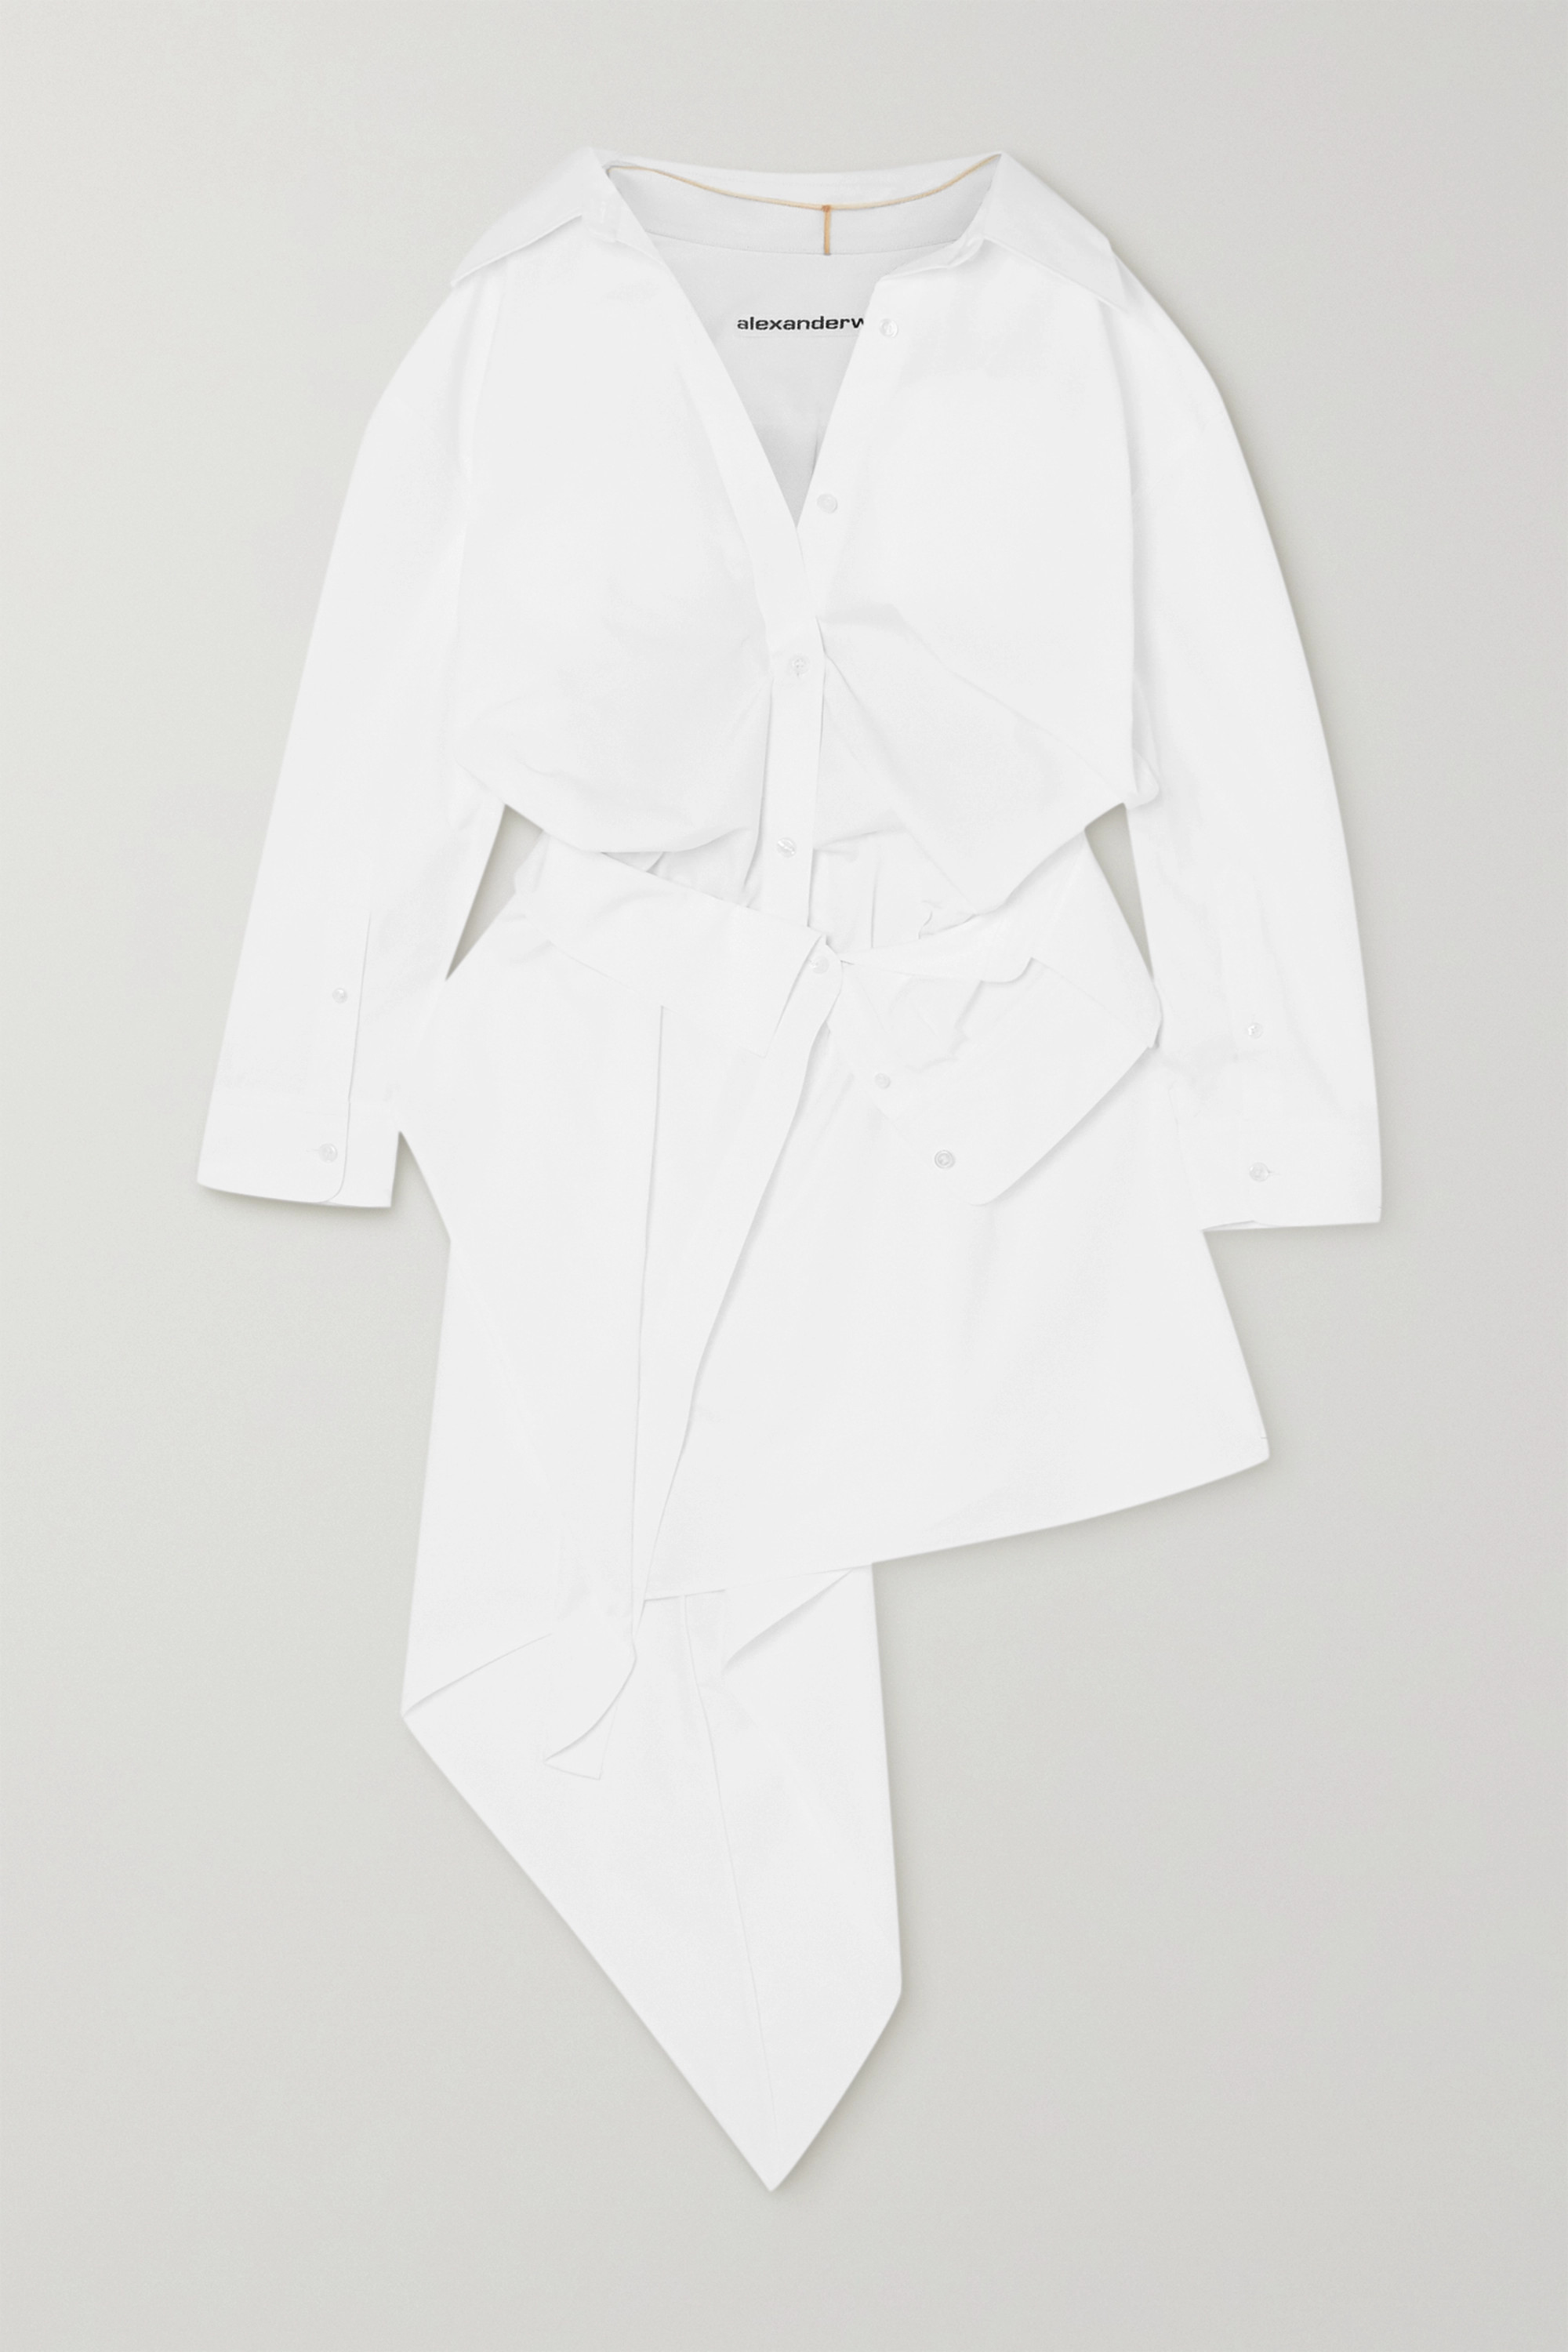 Alexander Wang Asymmetric cotton-poplin shirt dress